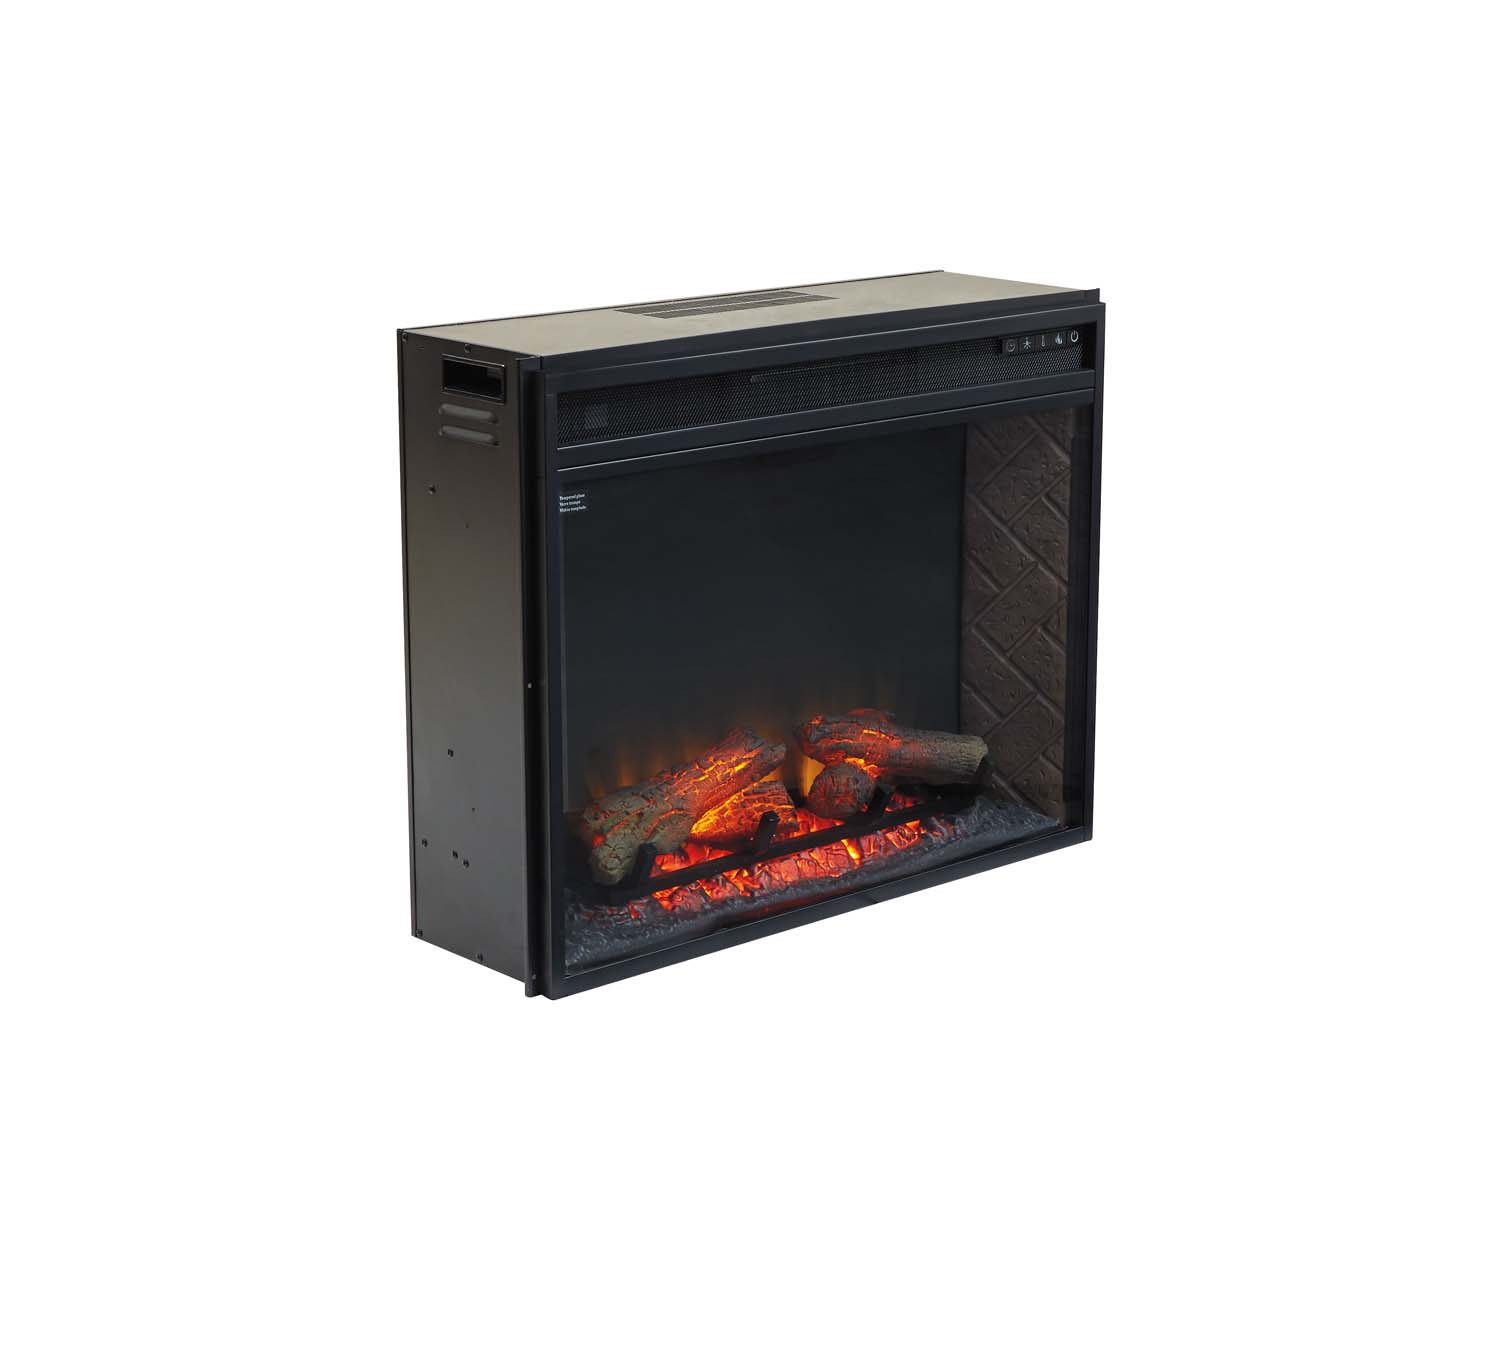 Charmant LG Fireplace Insert Infrared